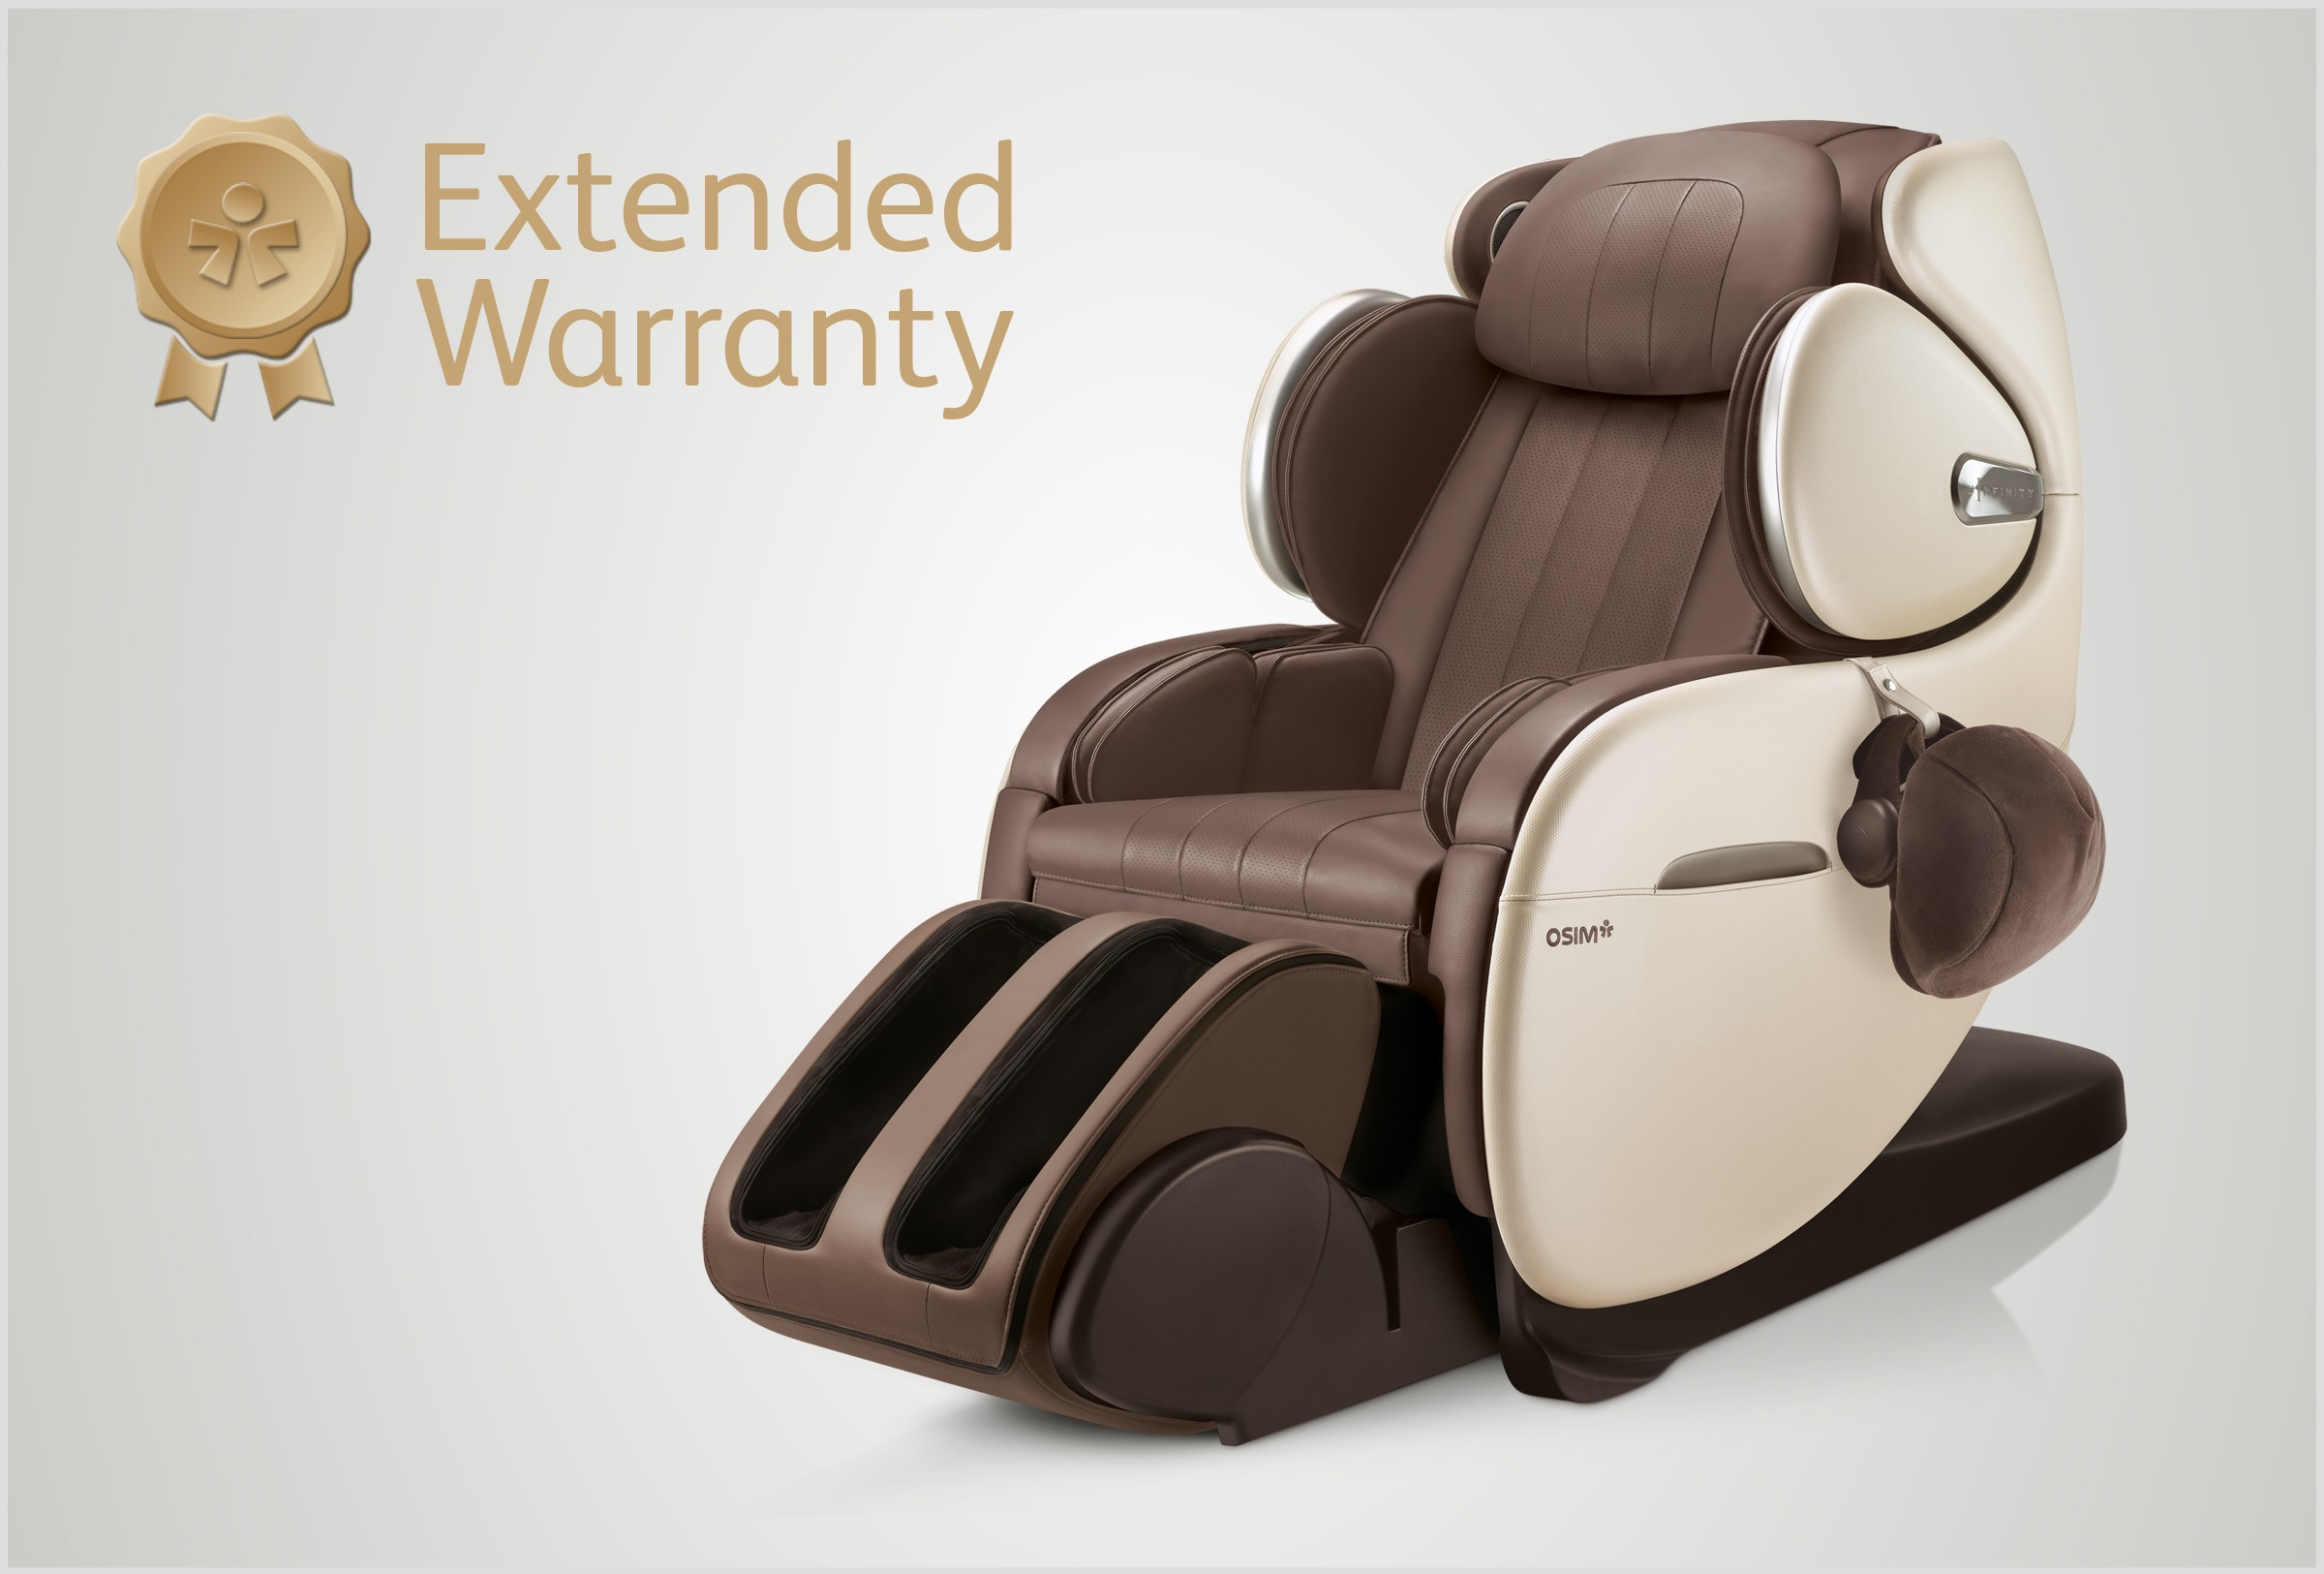 2 Years Extended Warranty uInfinity Luxe